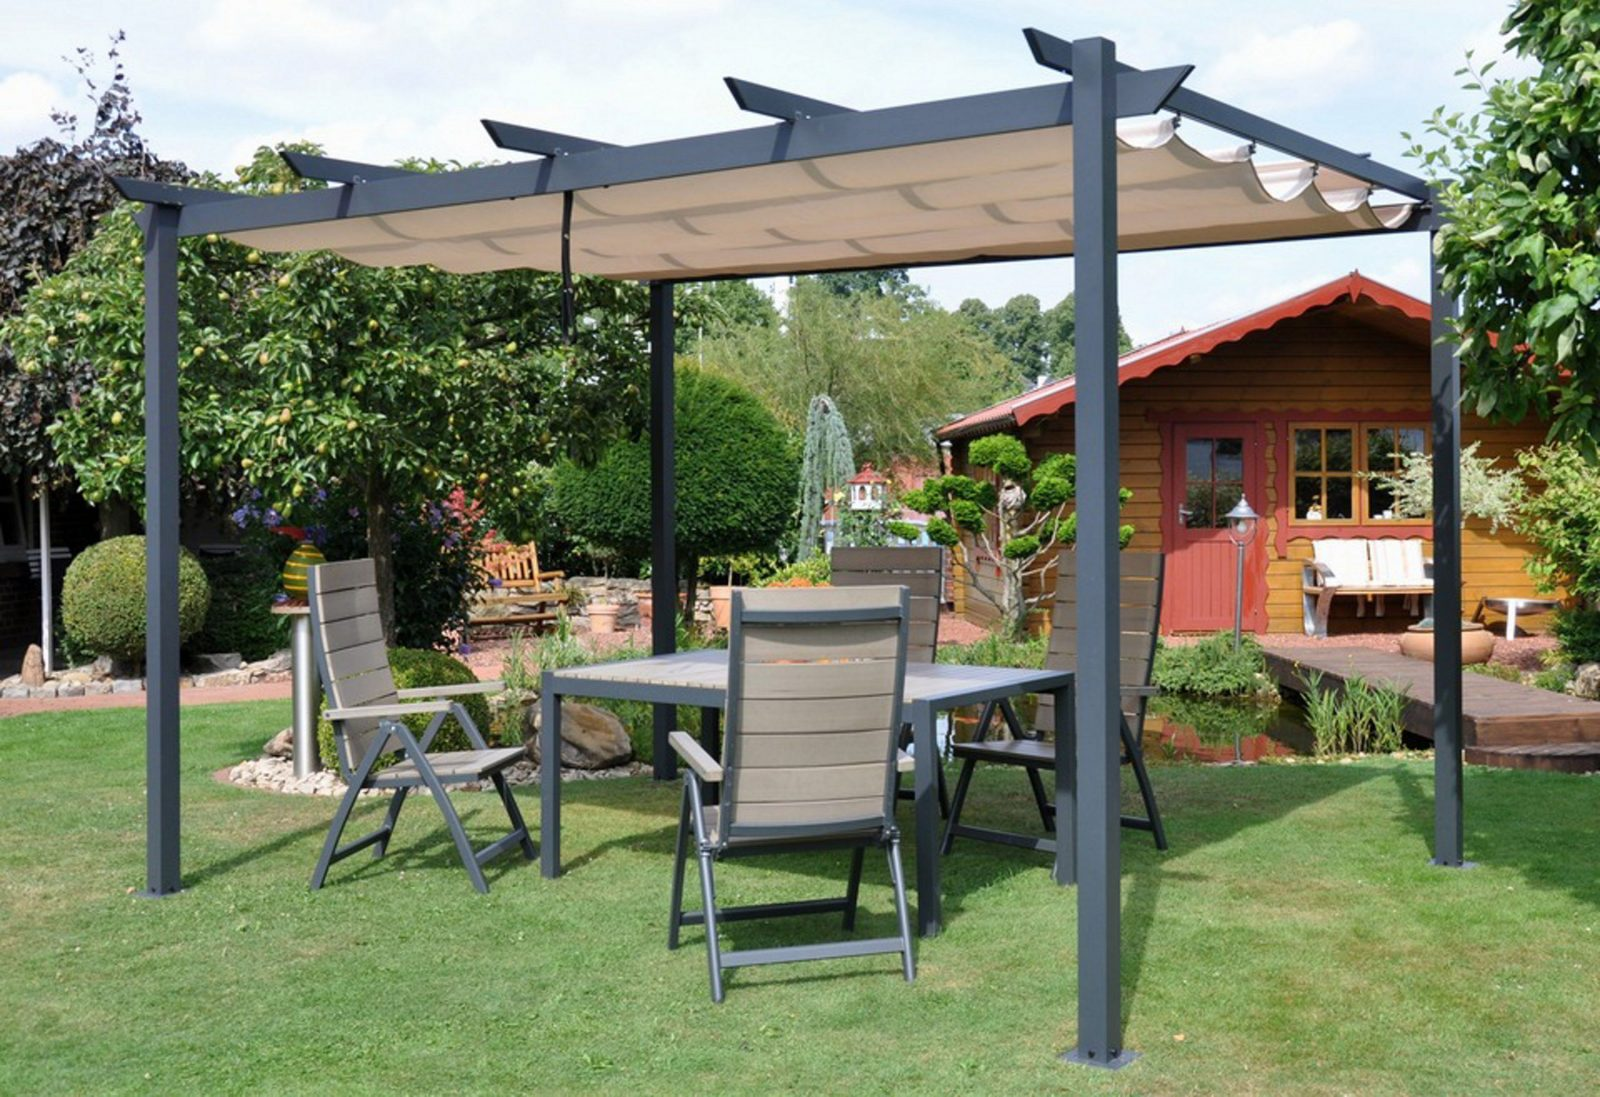 flachdachpergola 3 x 4 haus design ideen. Black Bedroom Furniture Sets. Home Design Ideas